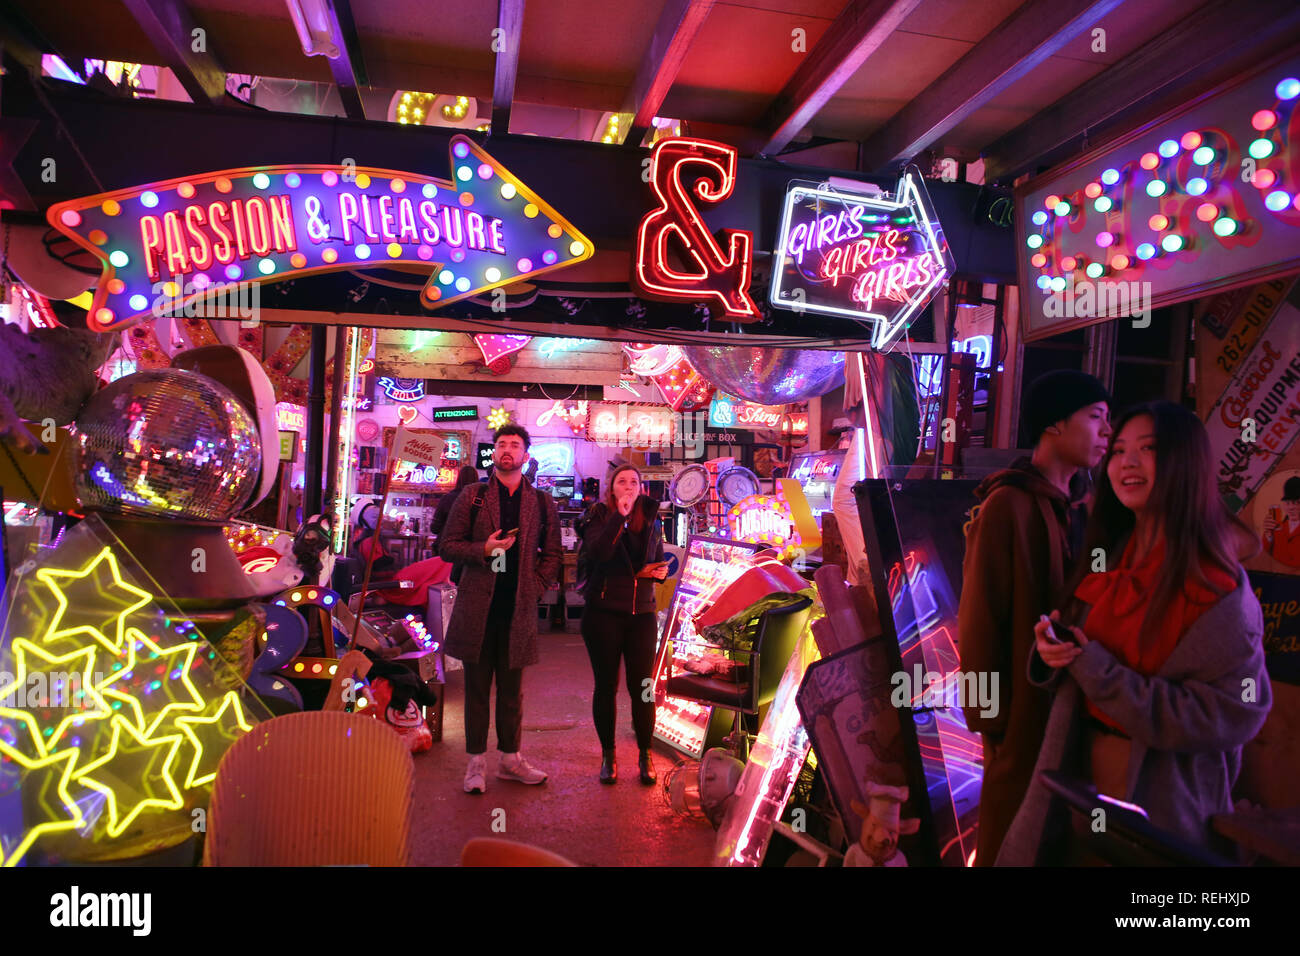 At God's Own Junkyard, Walthamstow, London - Stock Image